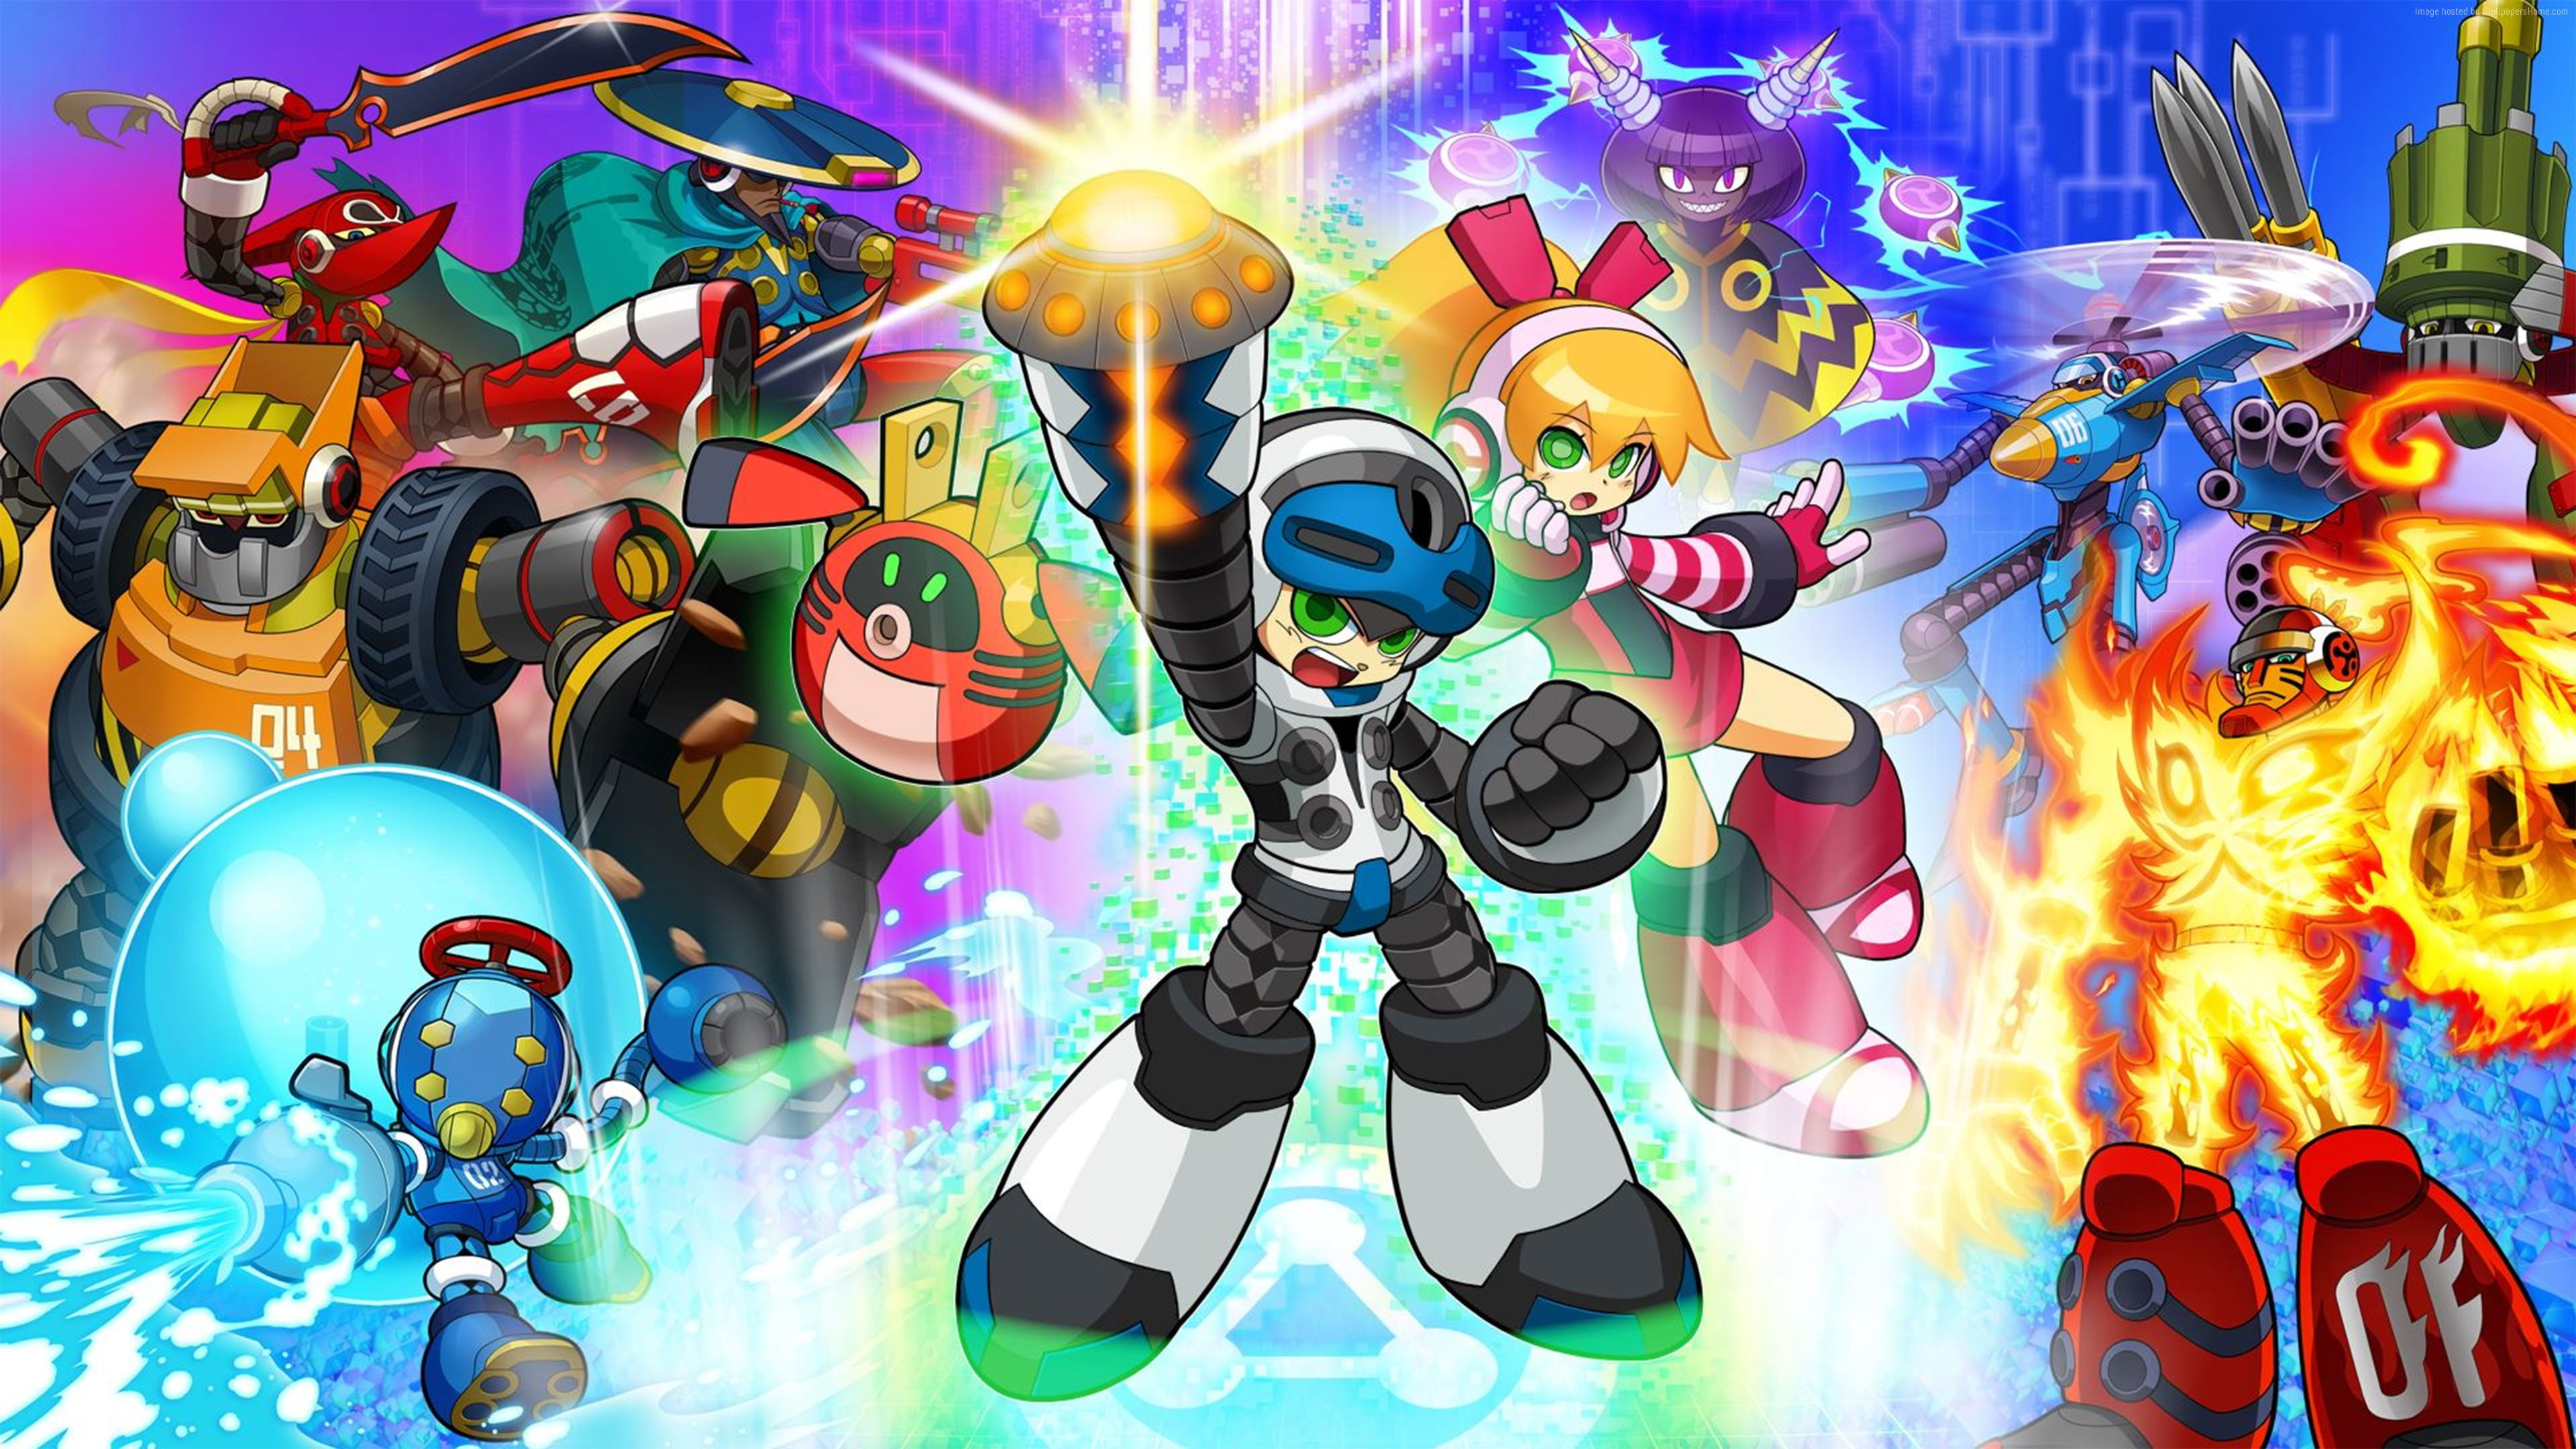 50 Mighty No 9 Wallpaper On Wallpapersafari